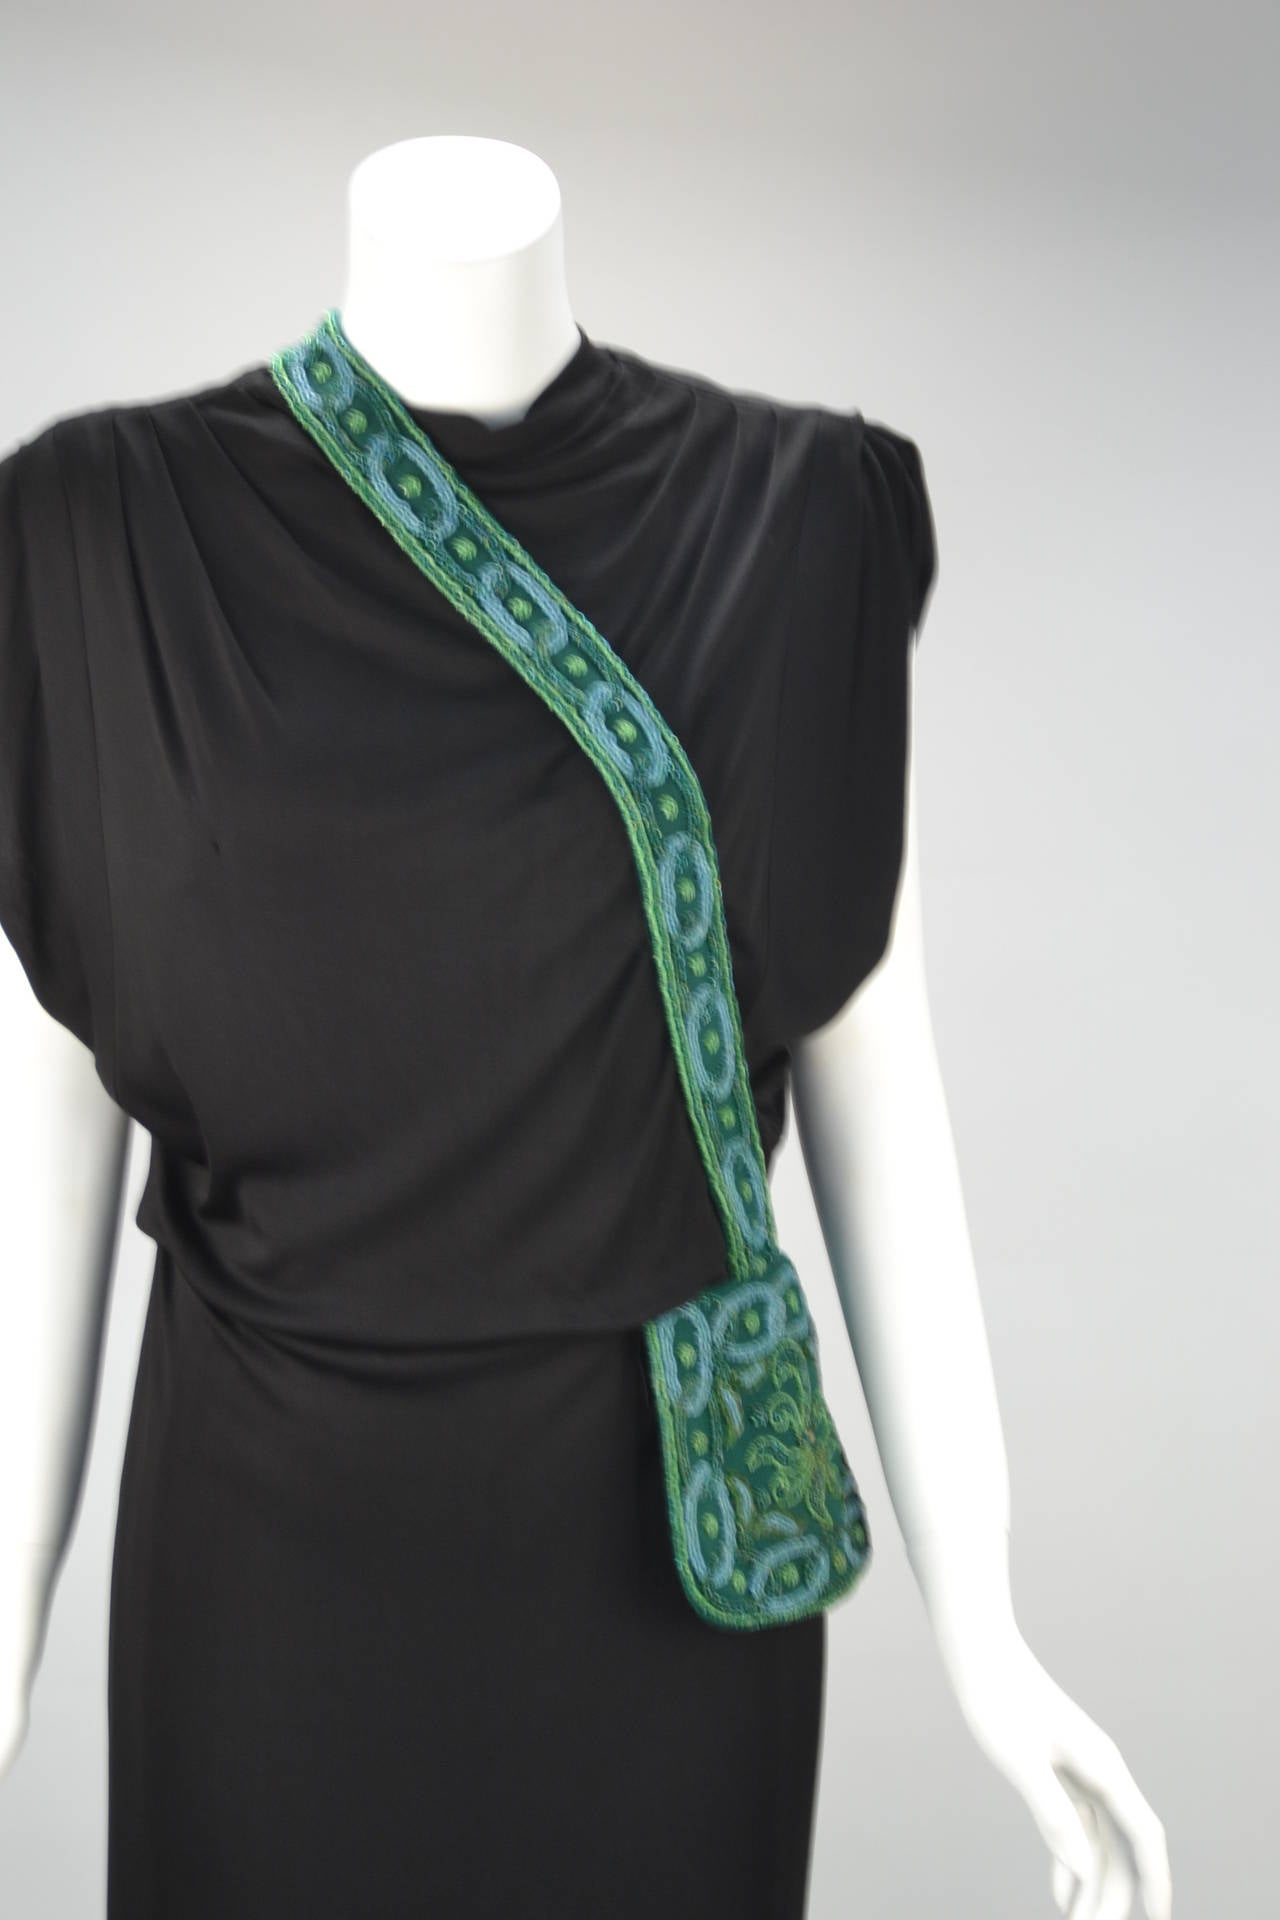 1940s Anita Modes Black Dress with Green Beaded and Appliquéd Purse 1